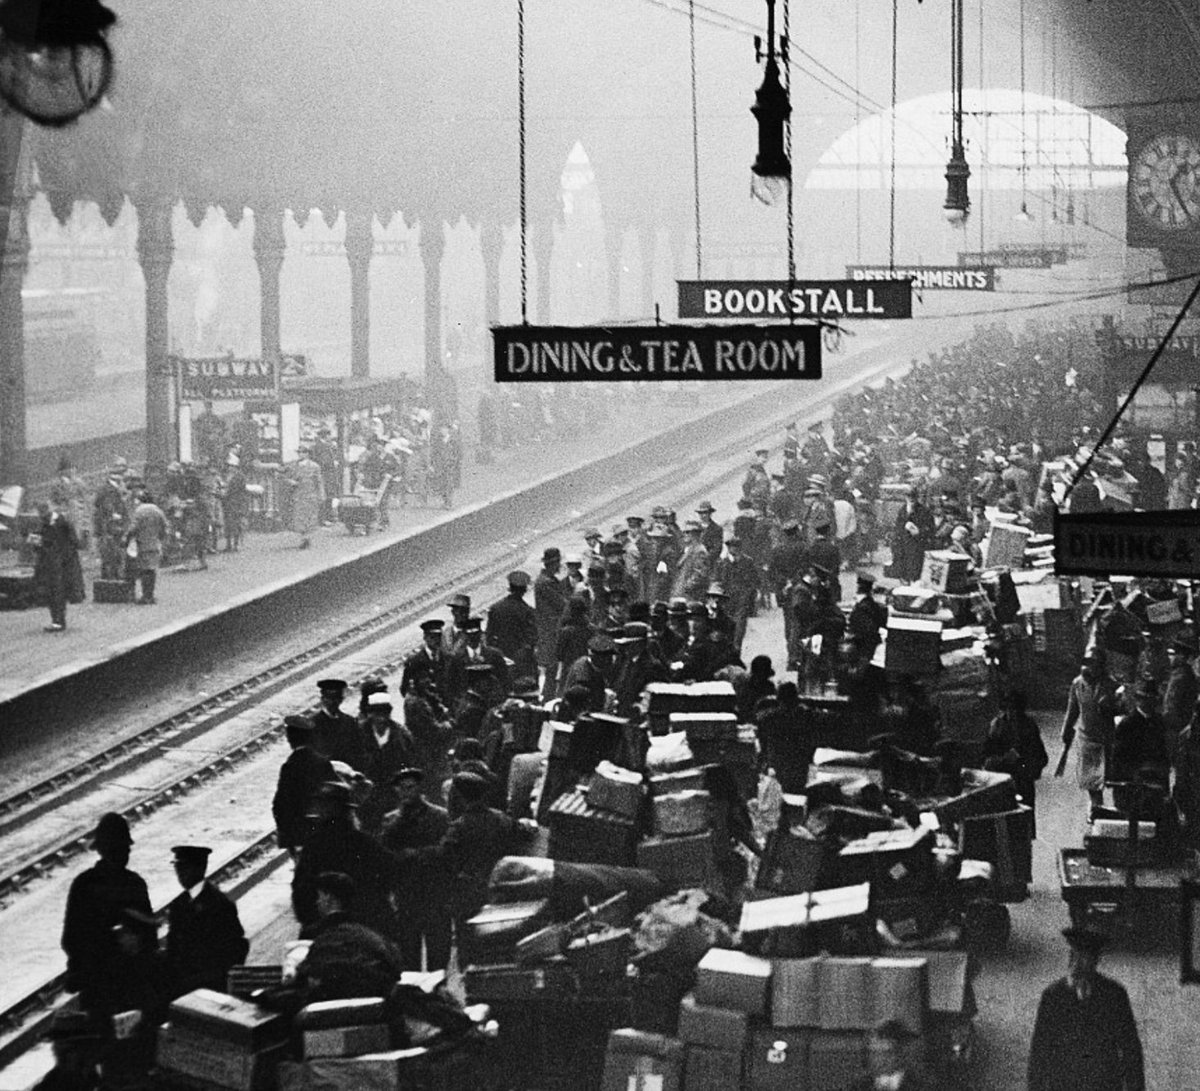 DvCINxDWoAAvS1I - London rail stations' bygone Xmases